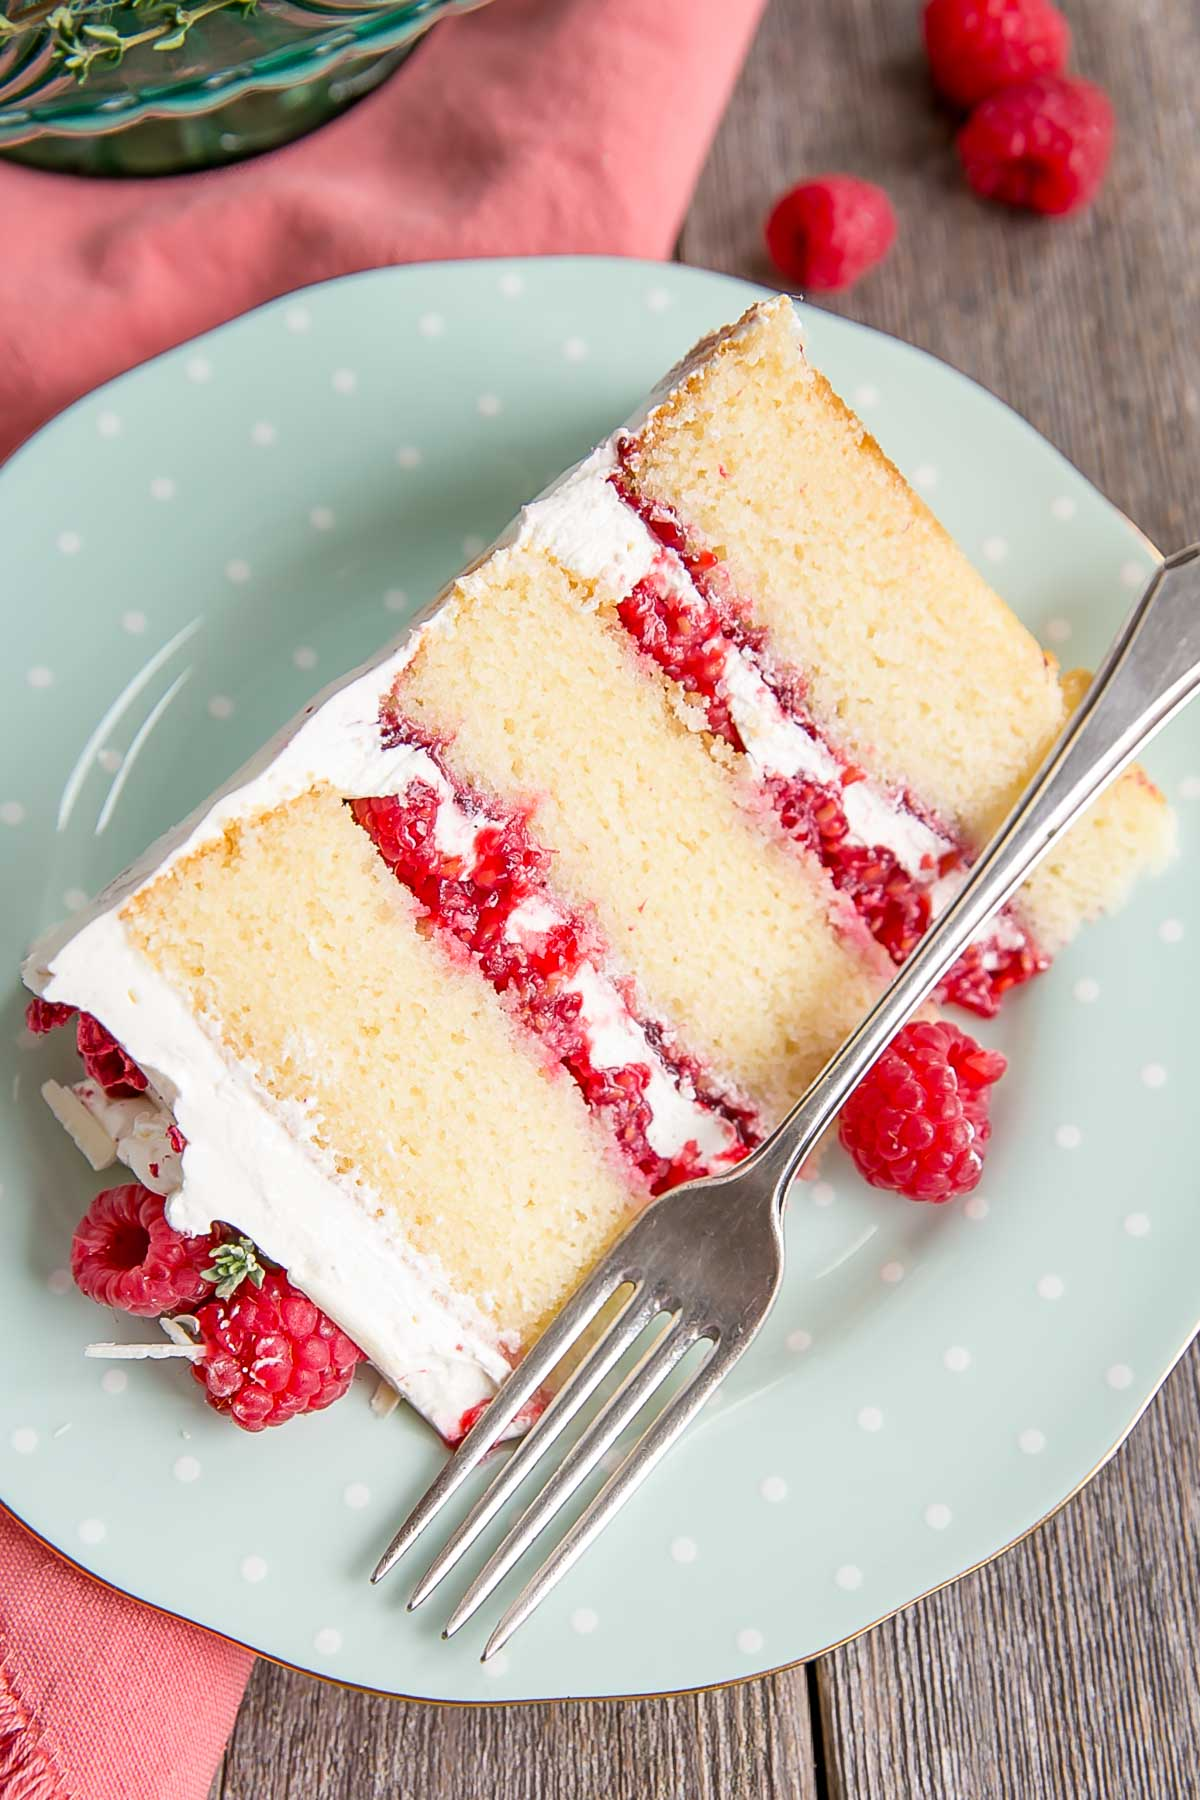 Slice of white chocolate cake with fresh raspberries.